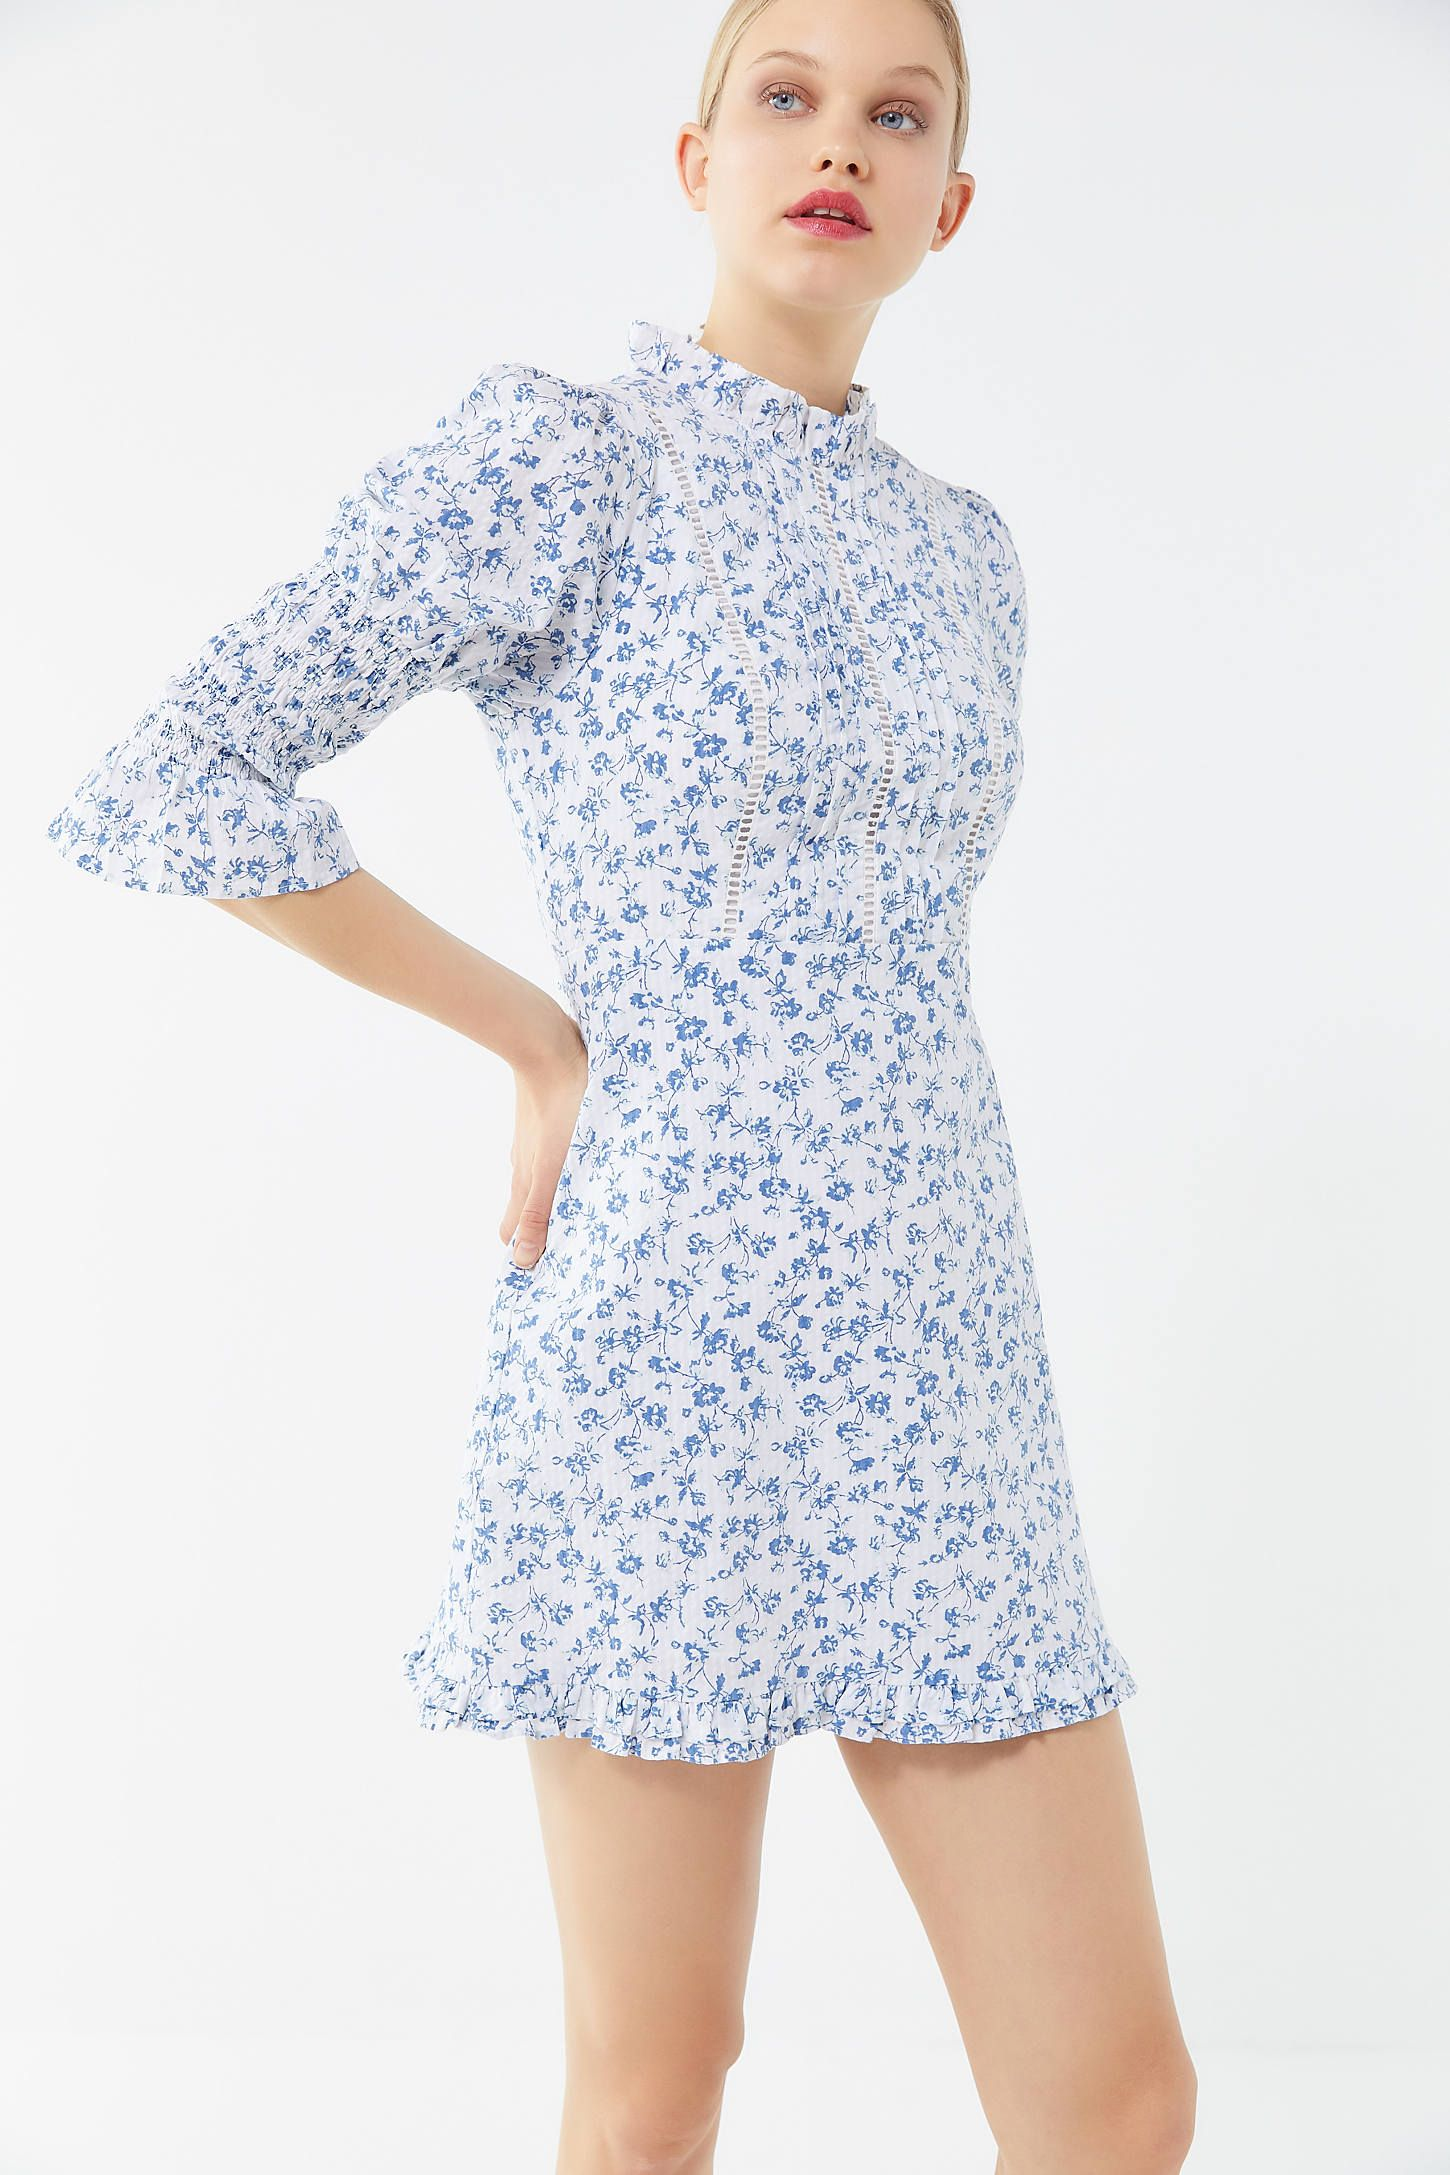 597b56d0d1 Laura Ashley UO Exclusive Maisy Mock Neck Mini Dress in 2019 ...